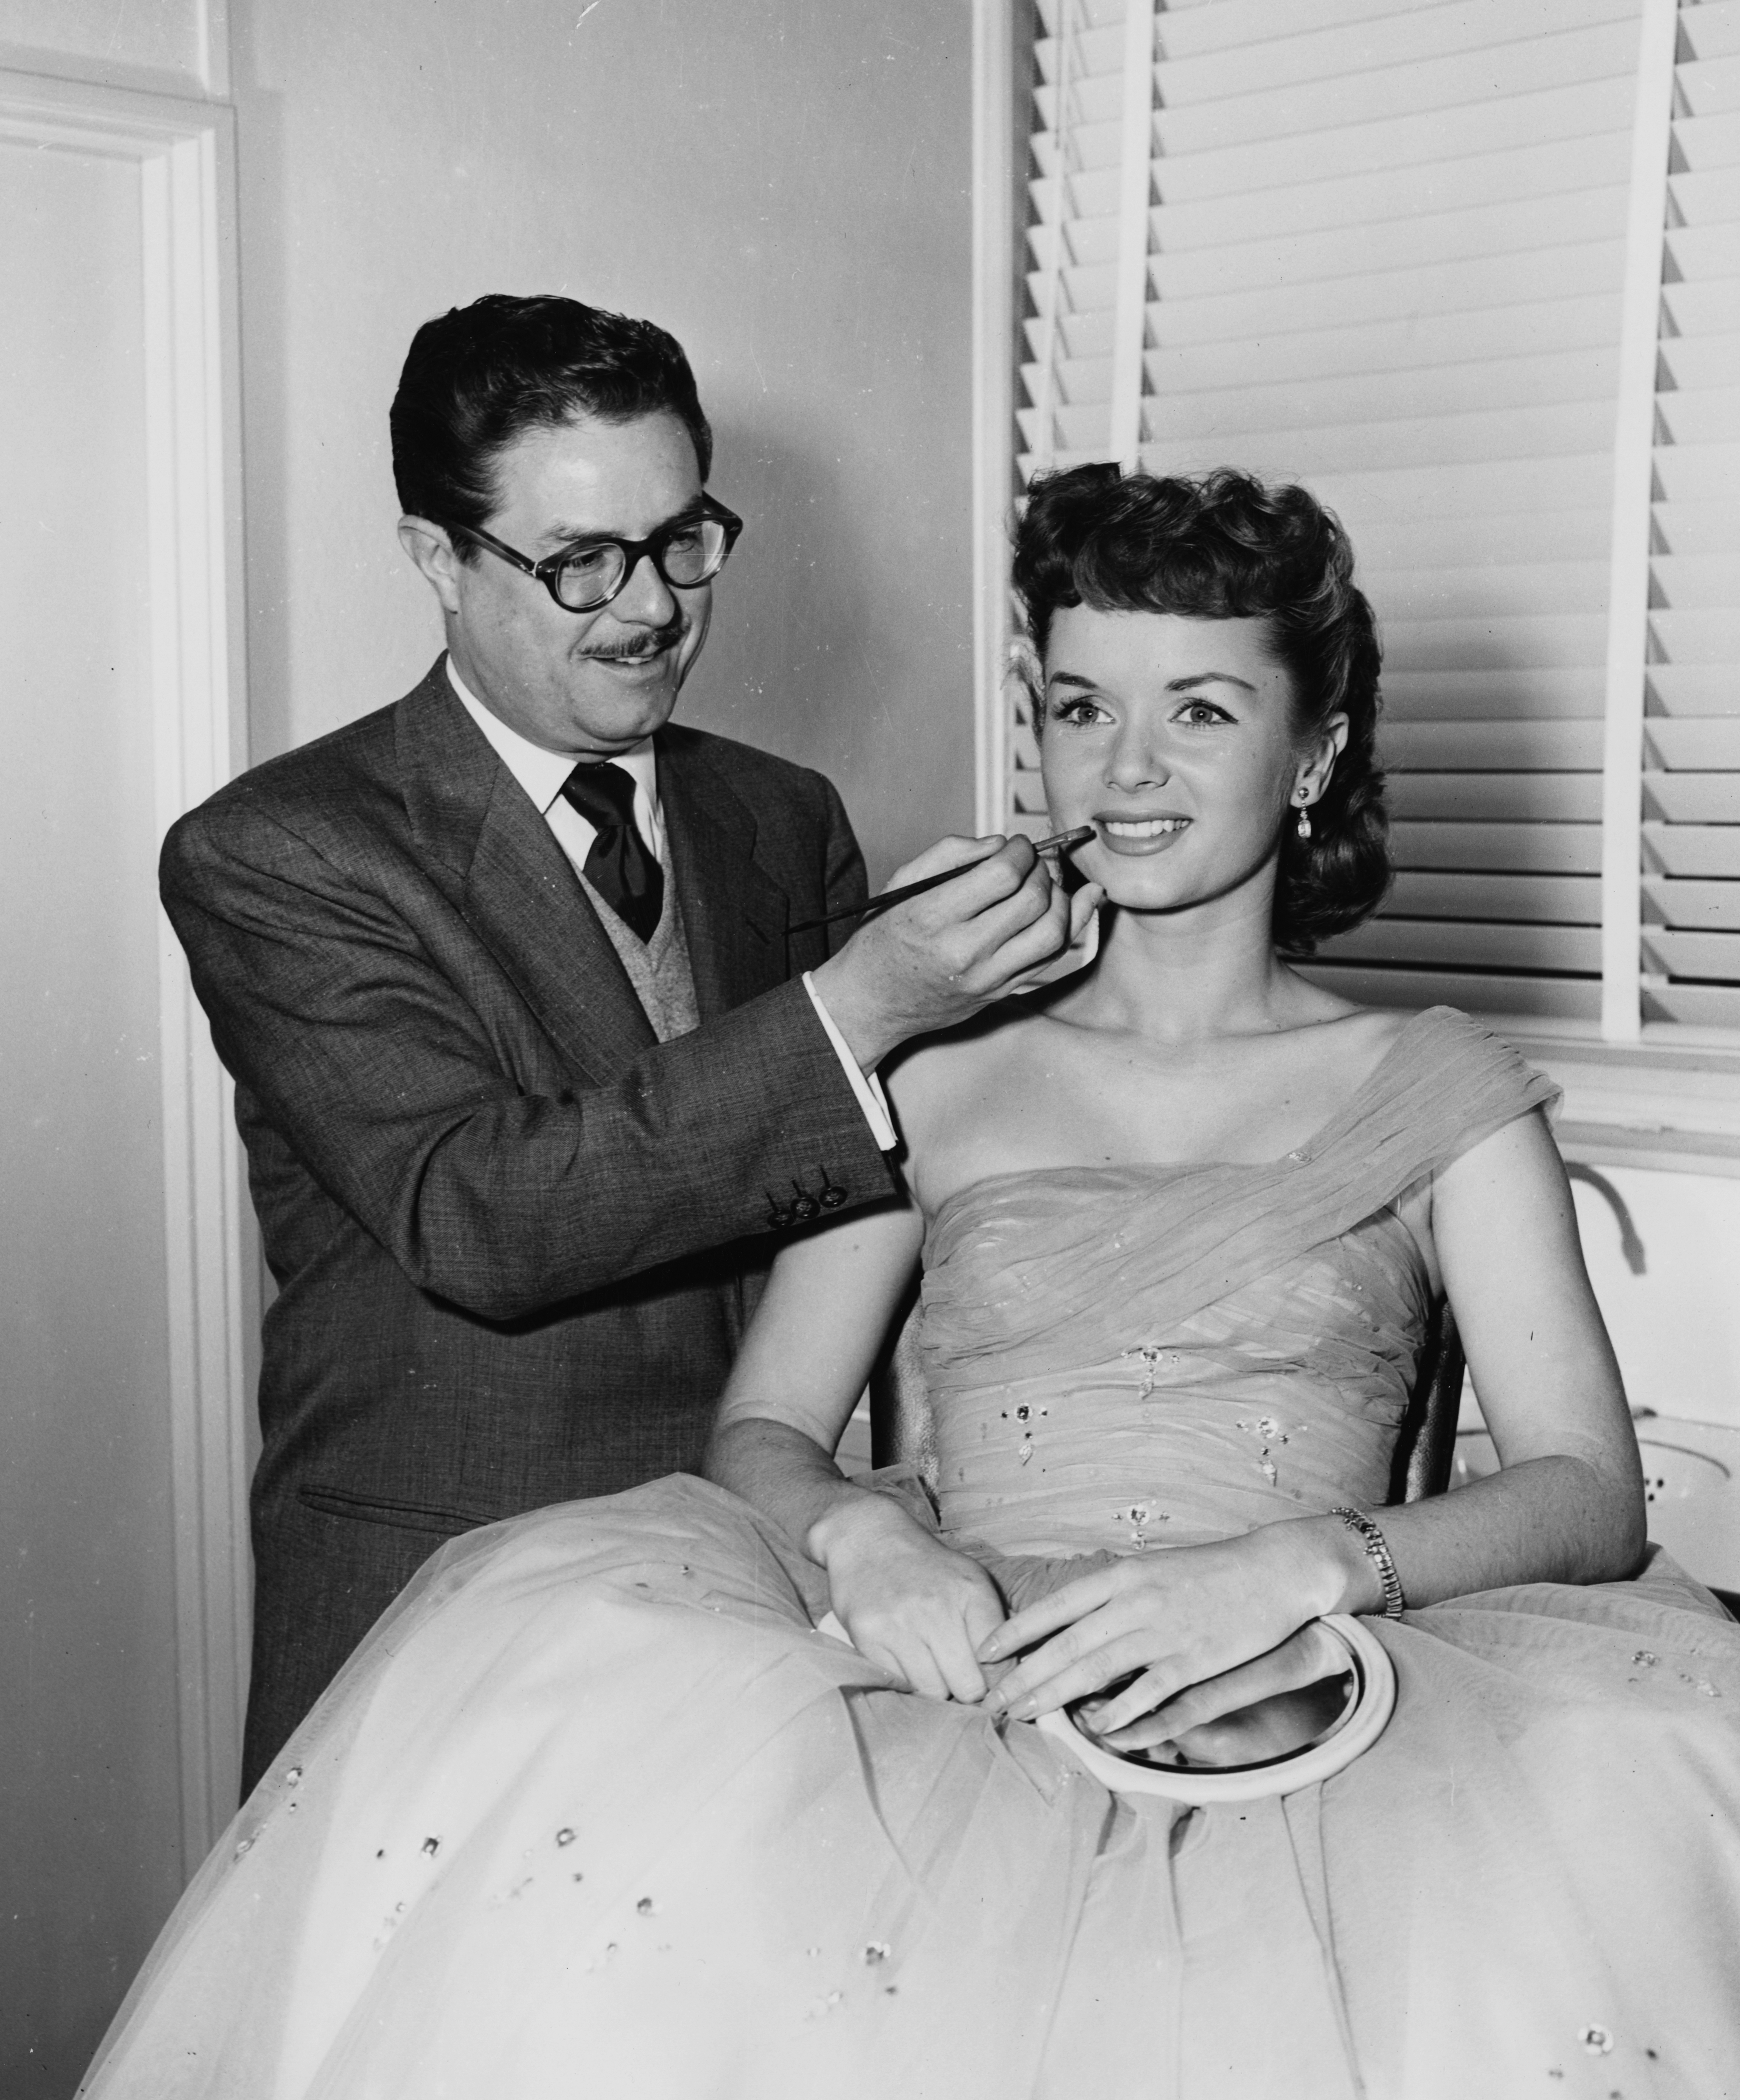 Makeup artist William J. Tuttle is seen applying lipstick on actress Debbie Reynolds, circa 1965. (Credit: Keystone/Hulton Archive/Getty Images)